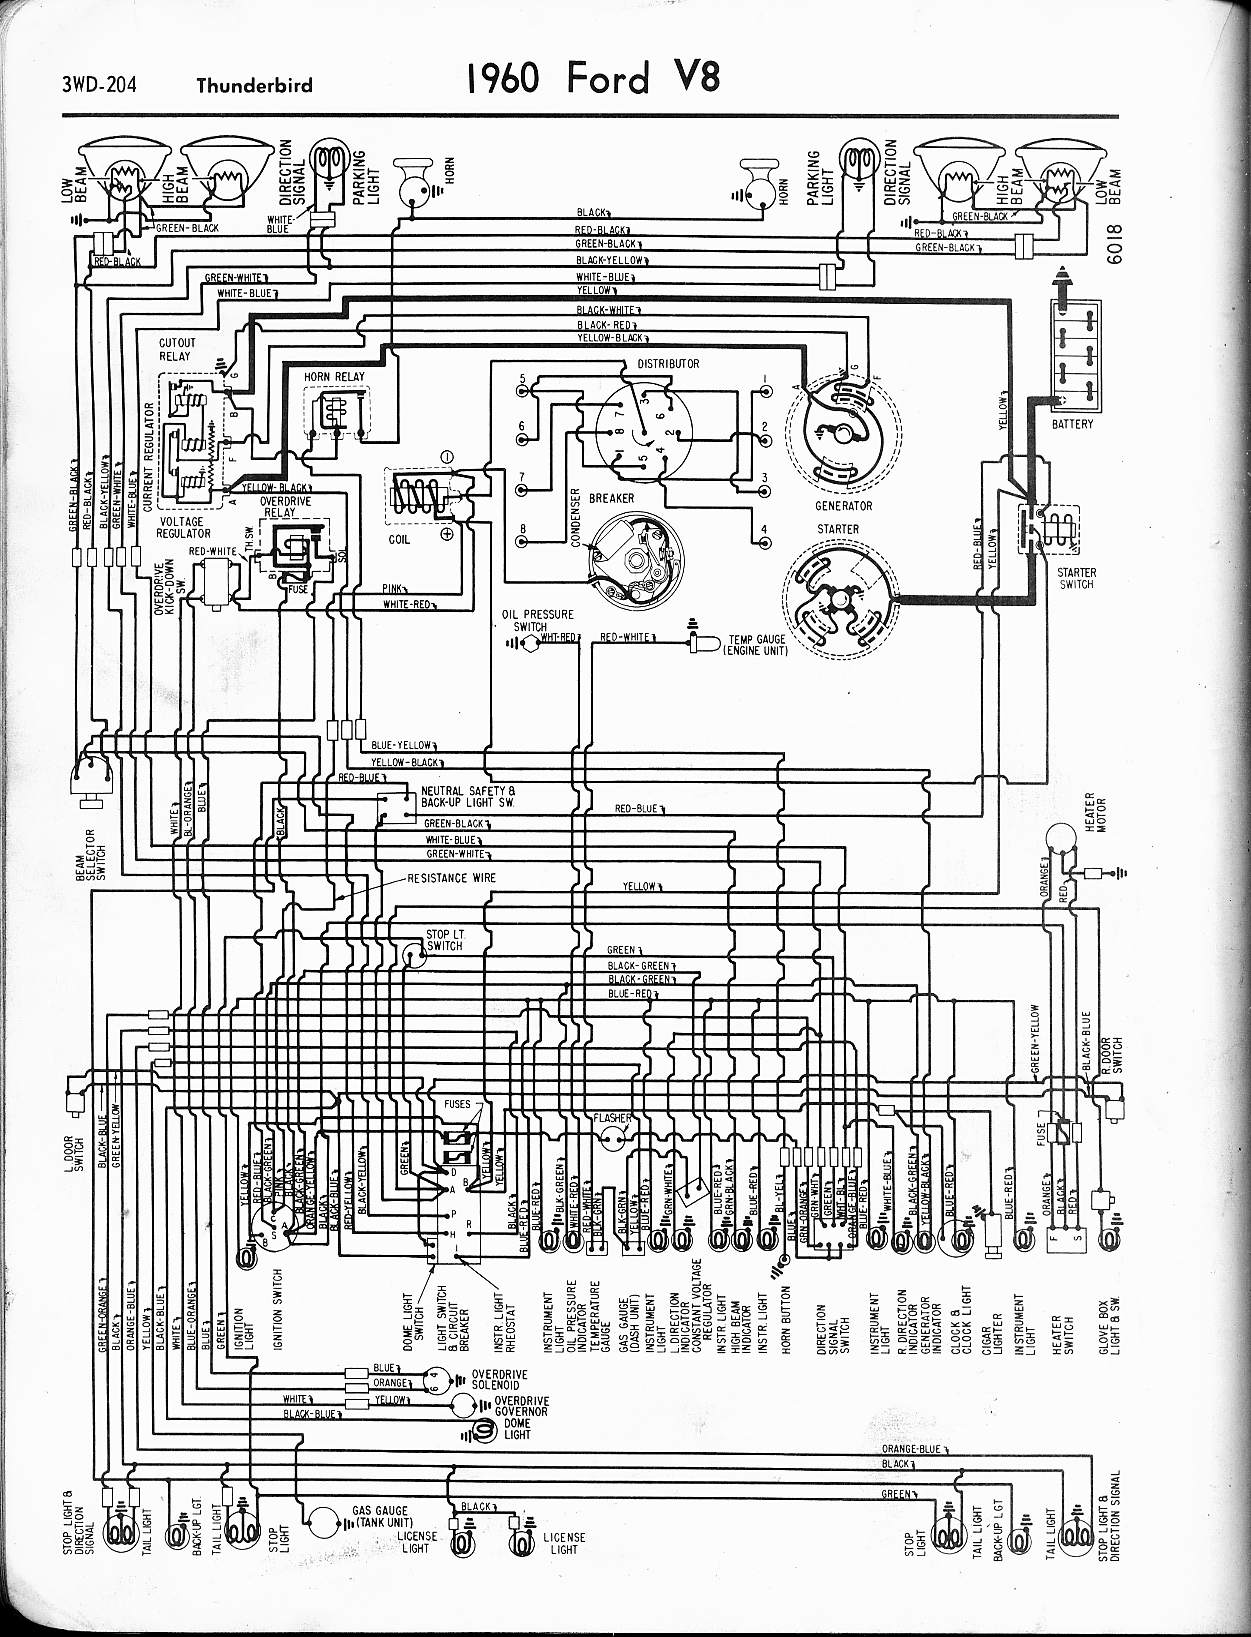 WRG-2228] 1957 Chevy Starter Wiring Diagram on